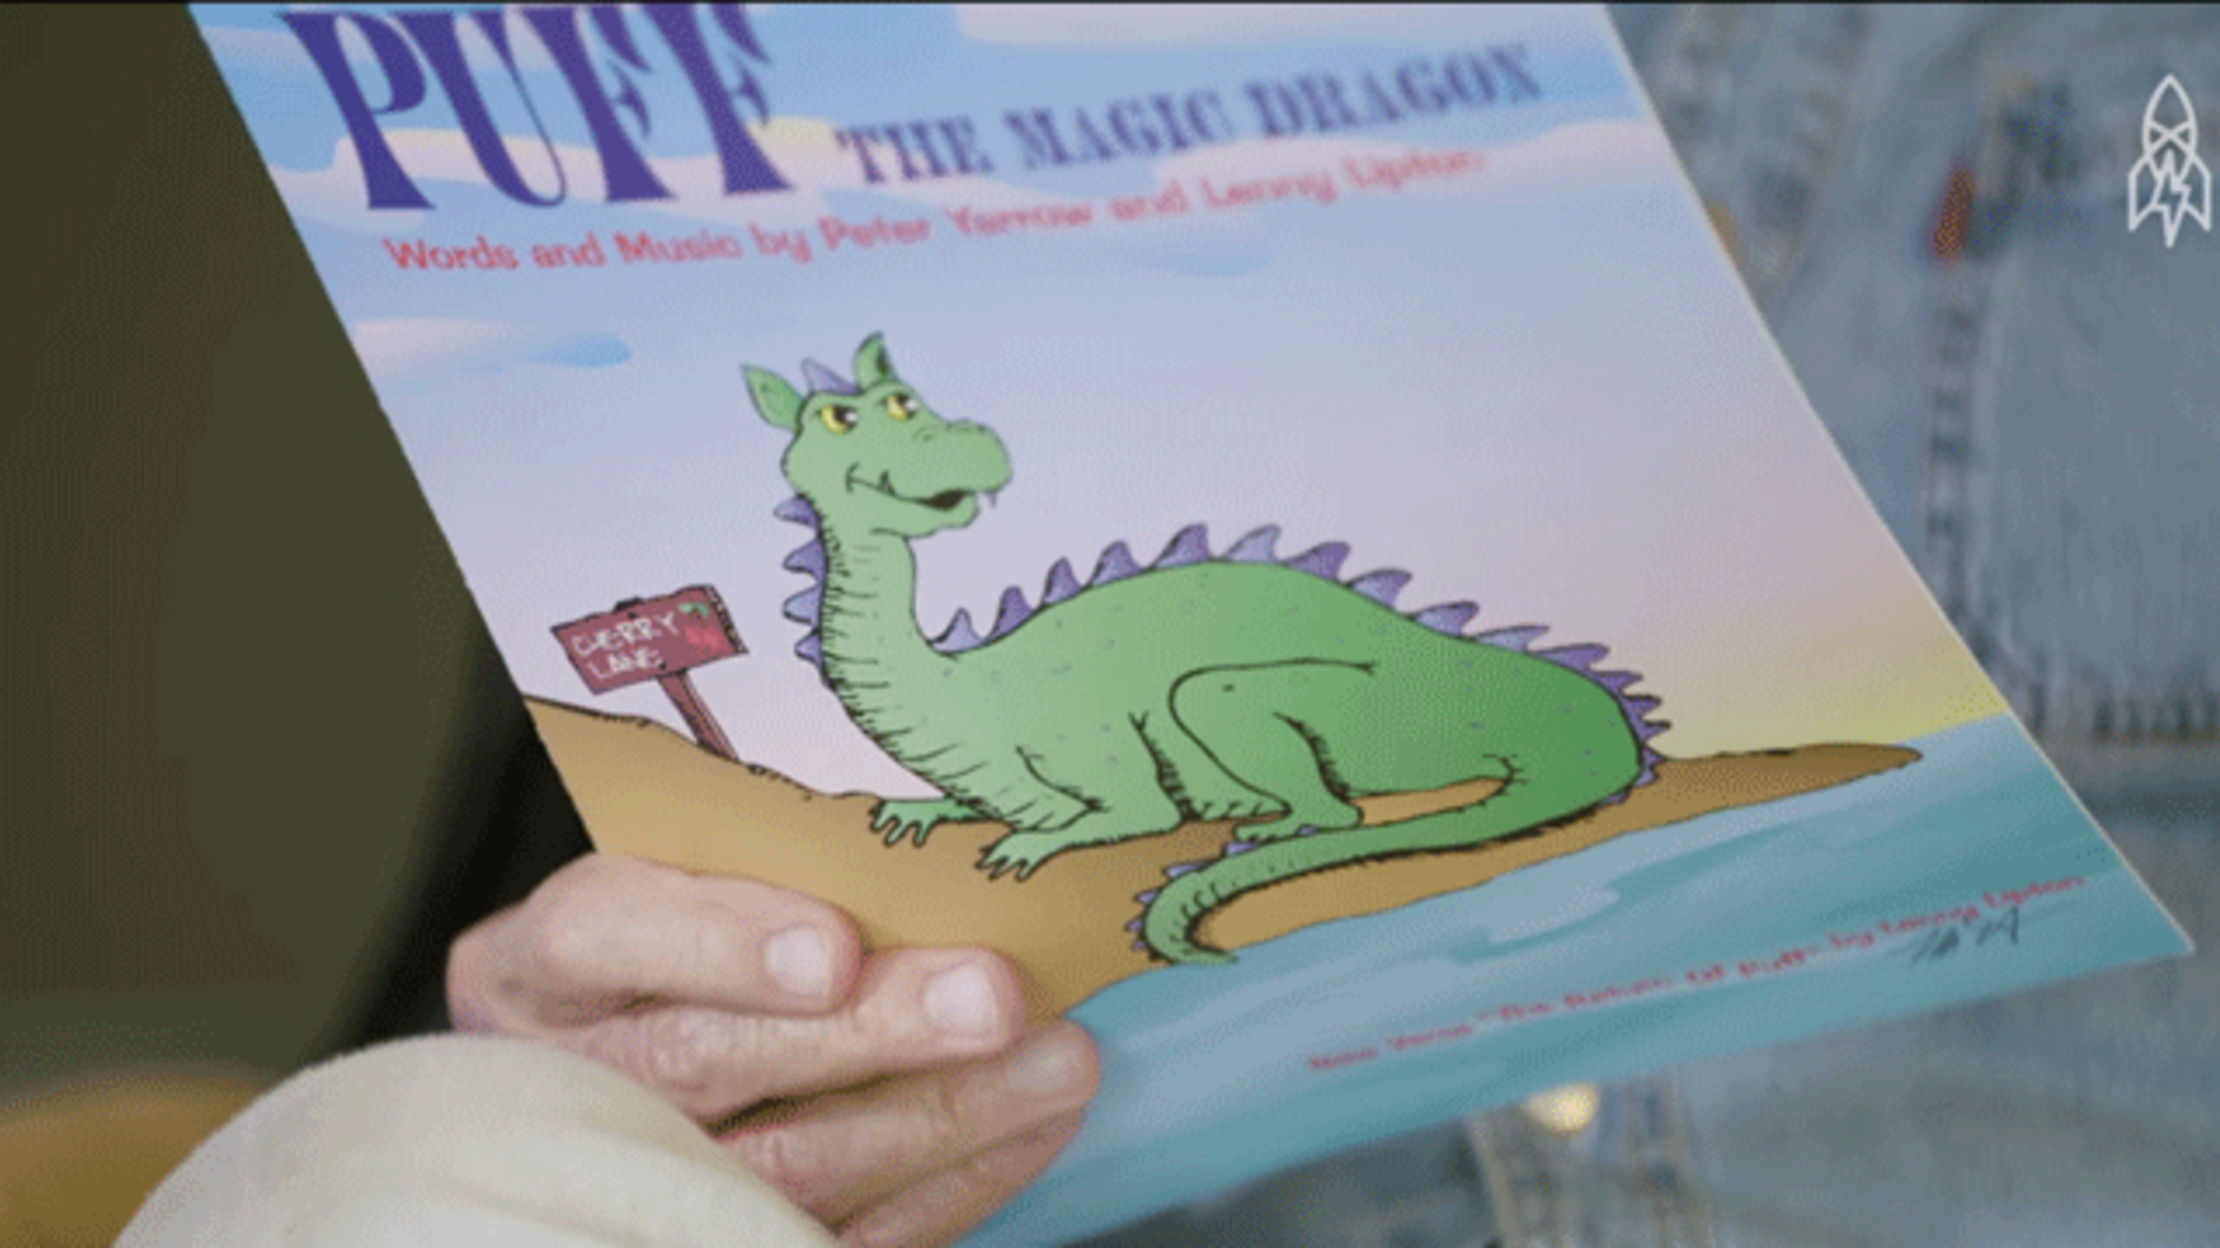 Listen to the Real Story Behind 'Puff the Magic Dragon' | Mental Floss